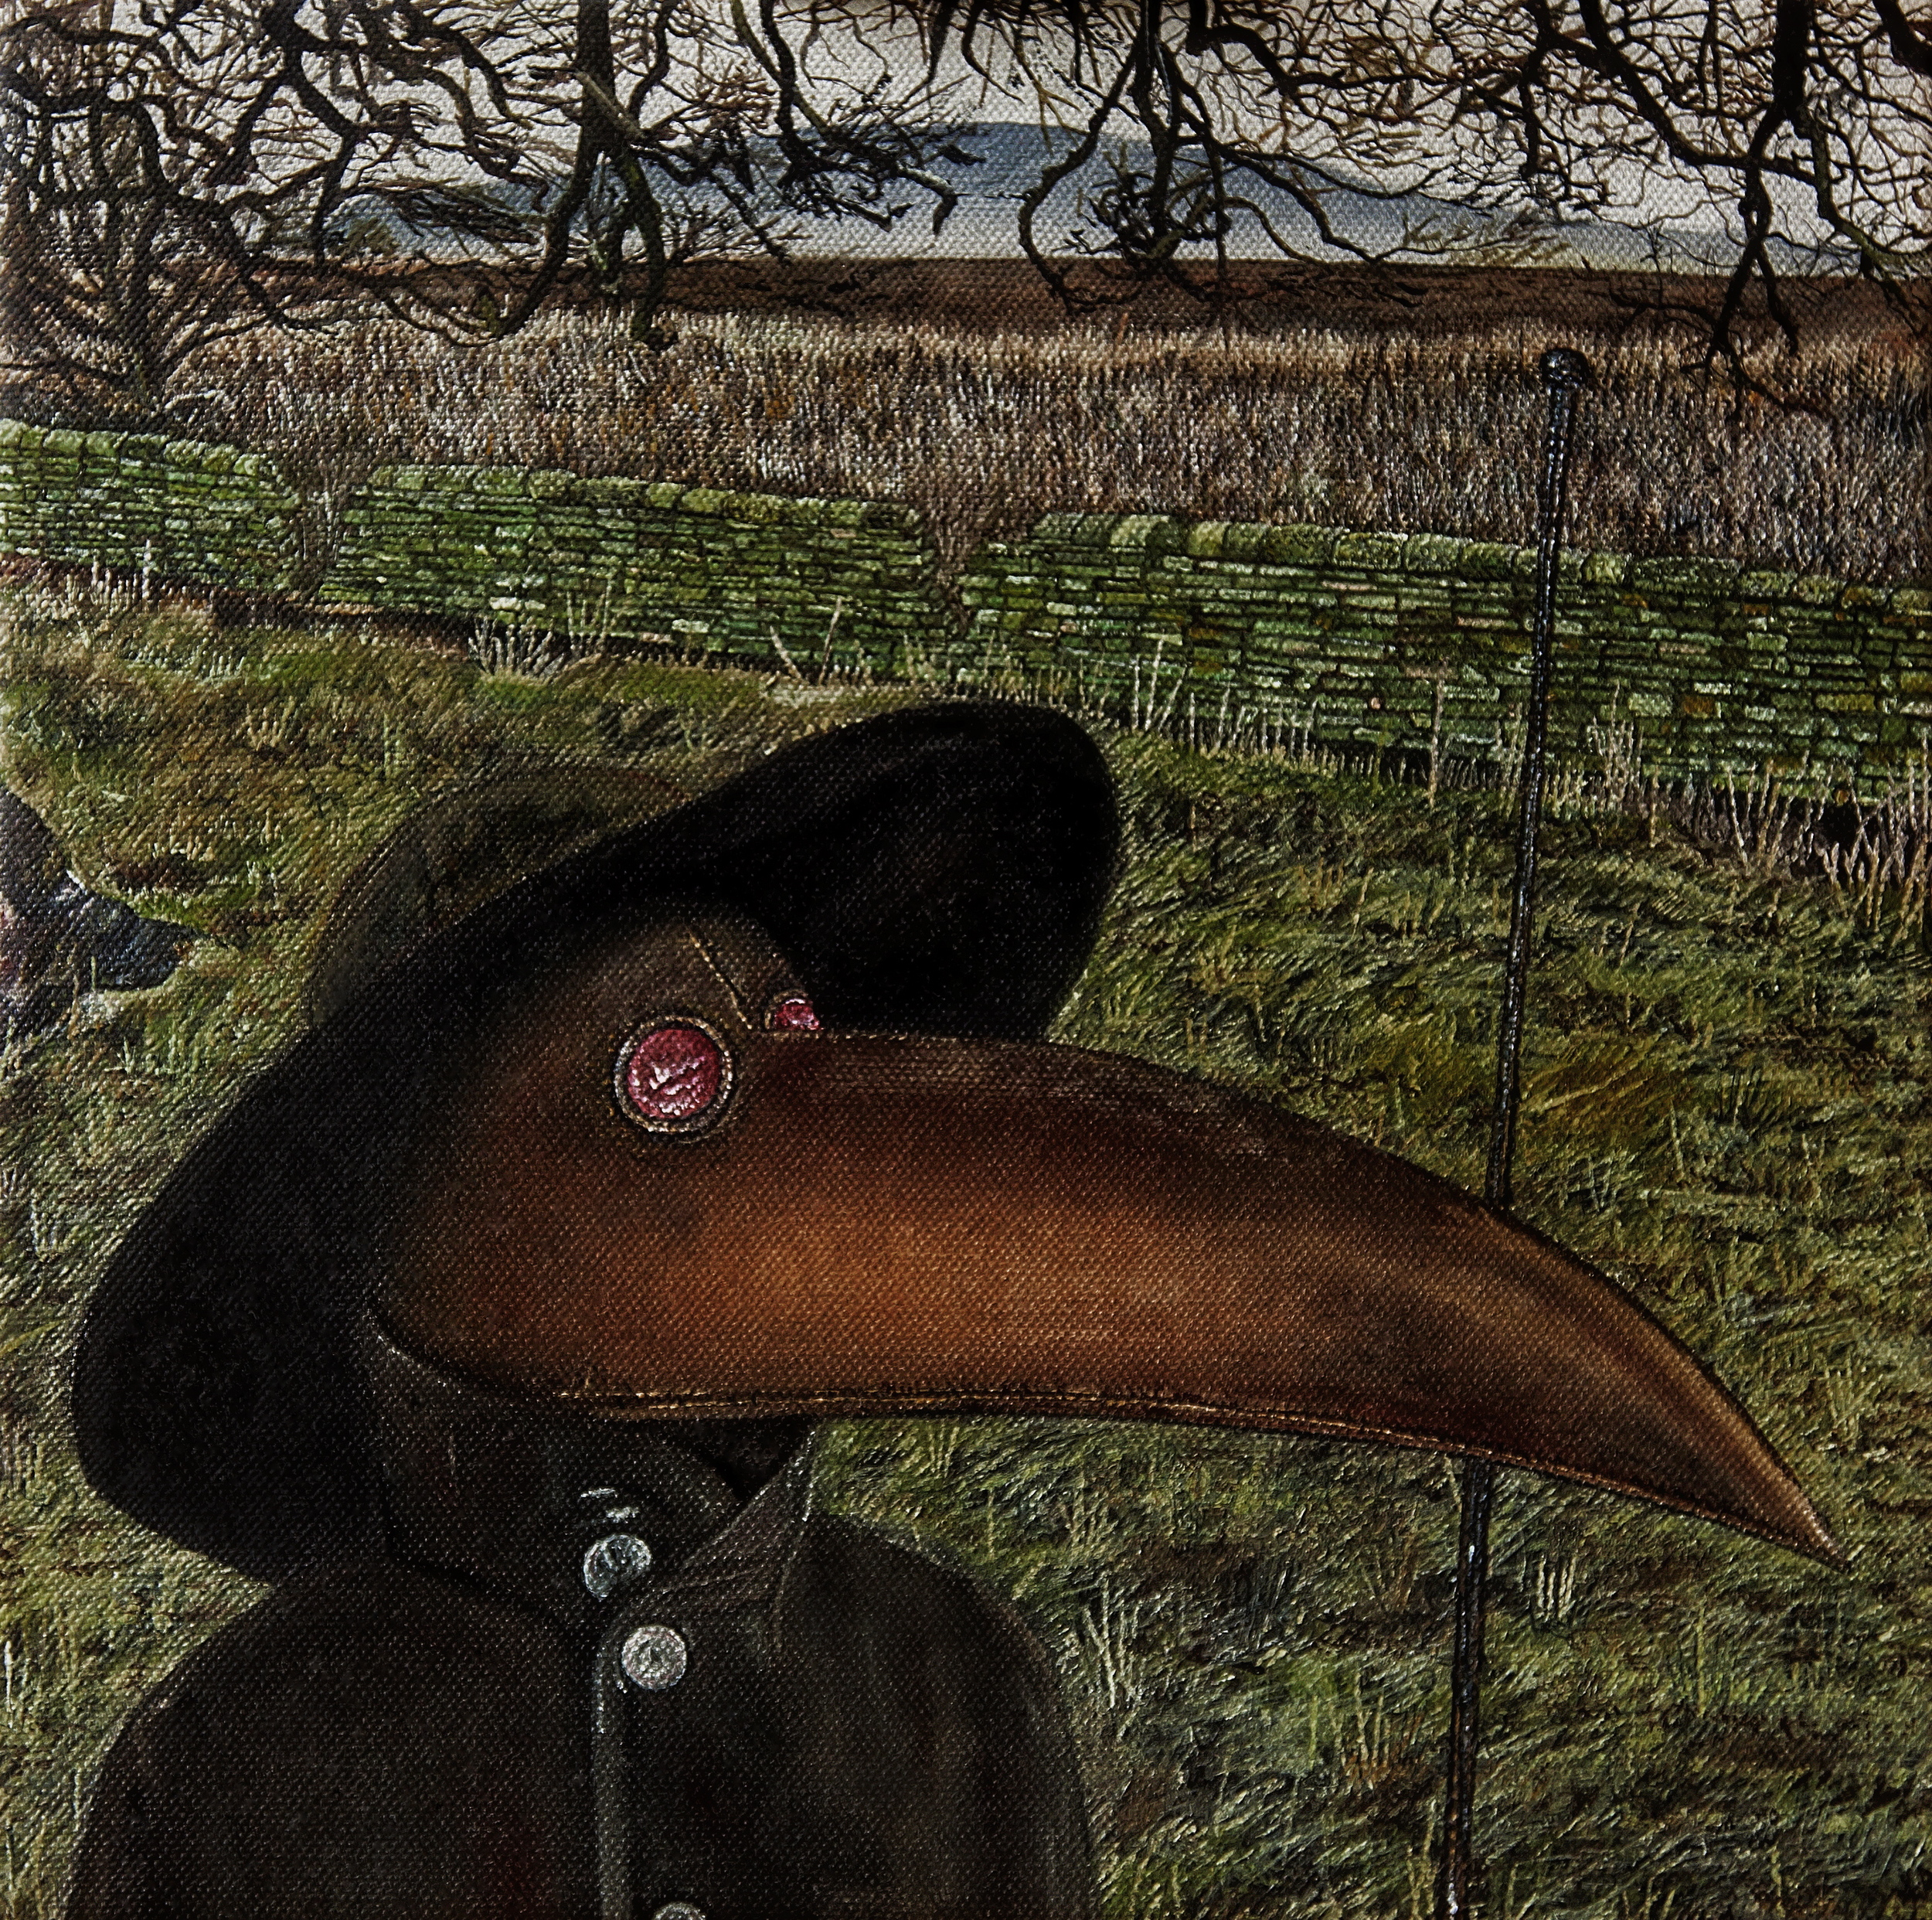 Plague Doctor. Oil on canvas. 12 x 12 inches